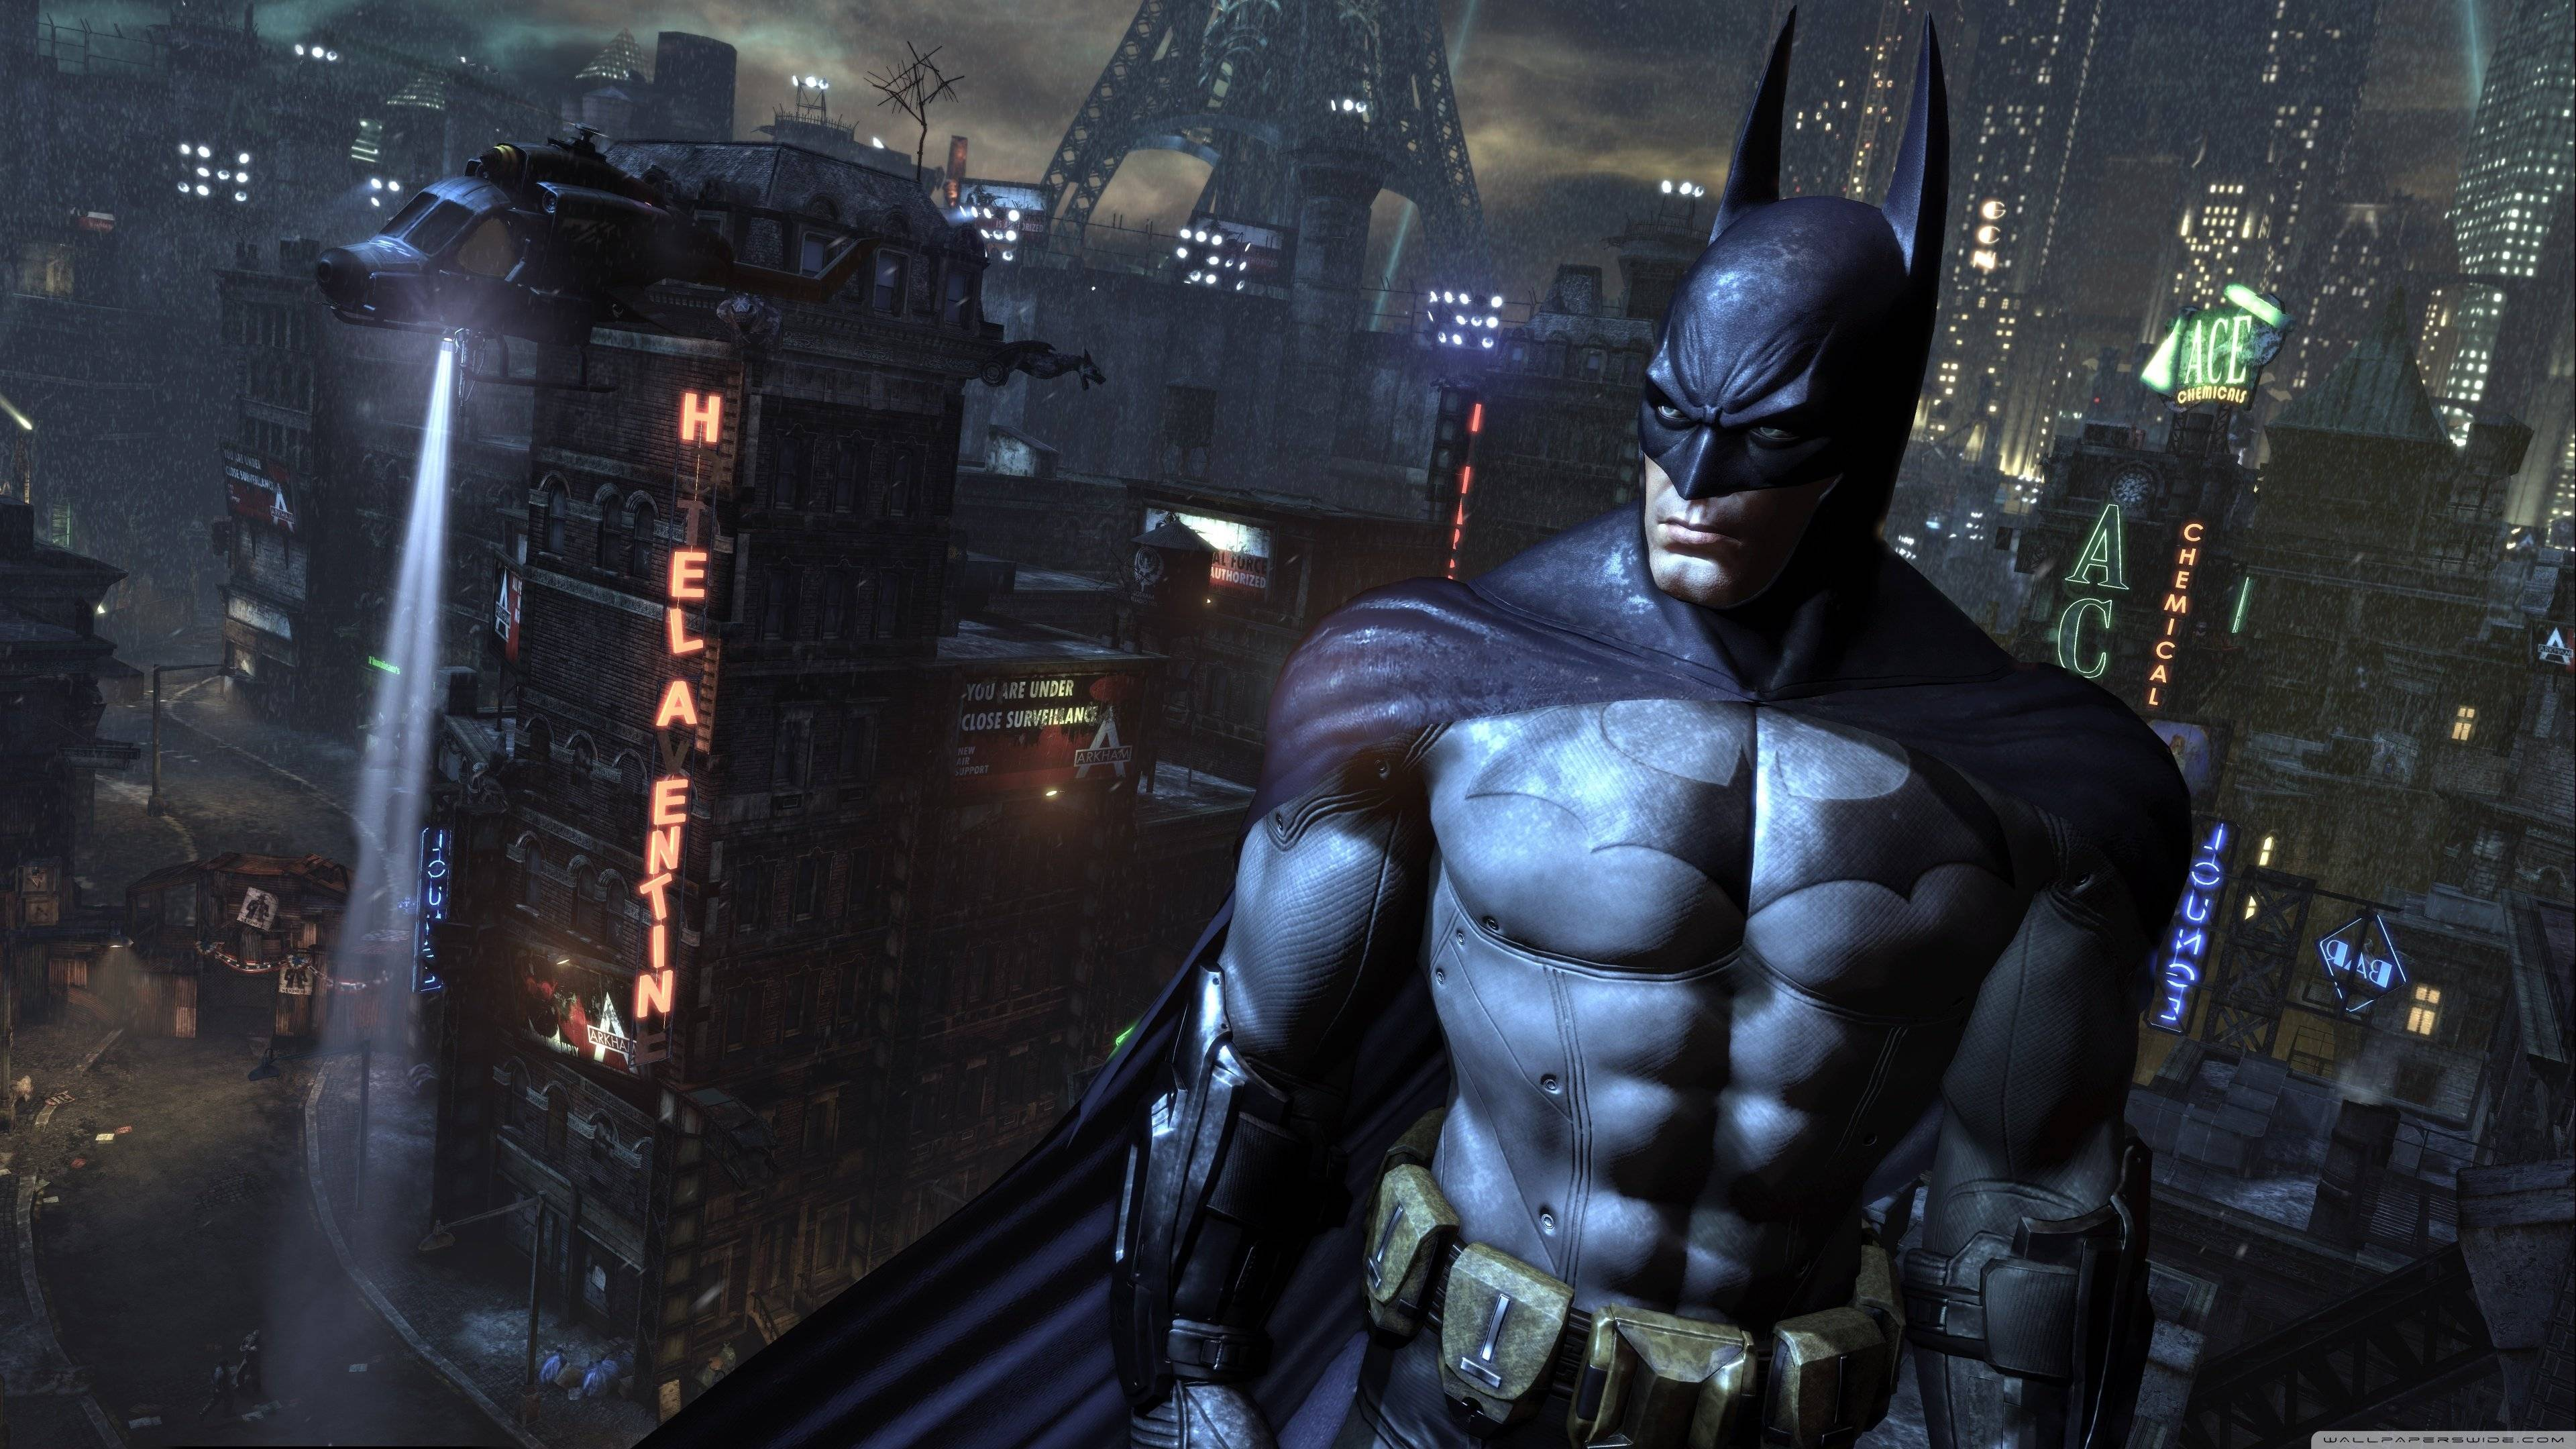 Hd Wallpapers For Pc Superheroes